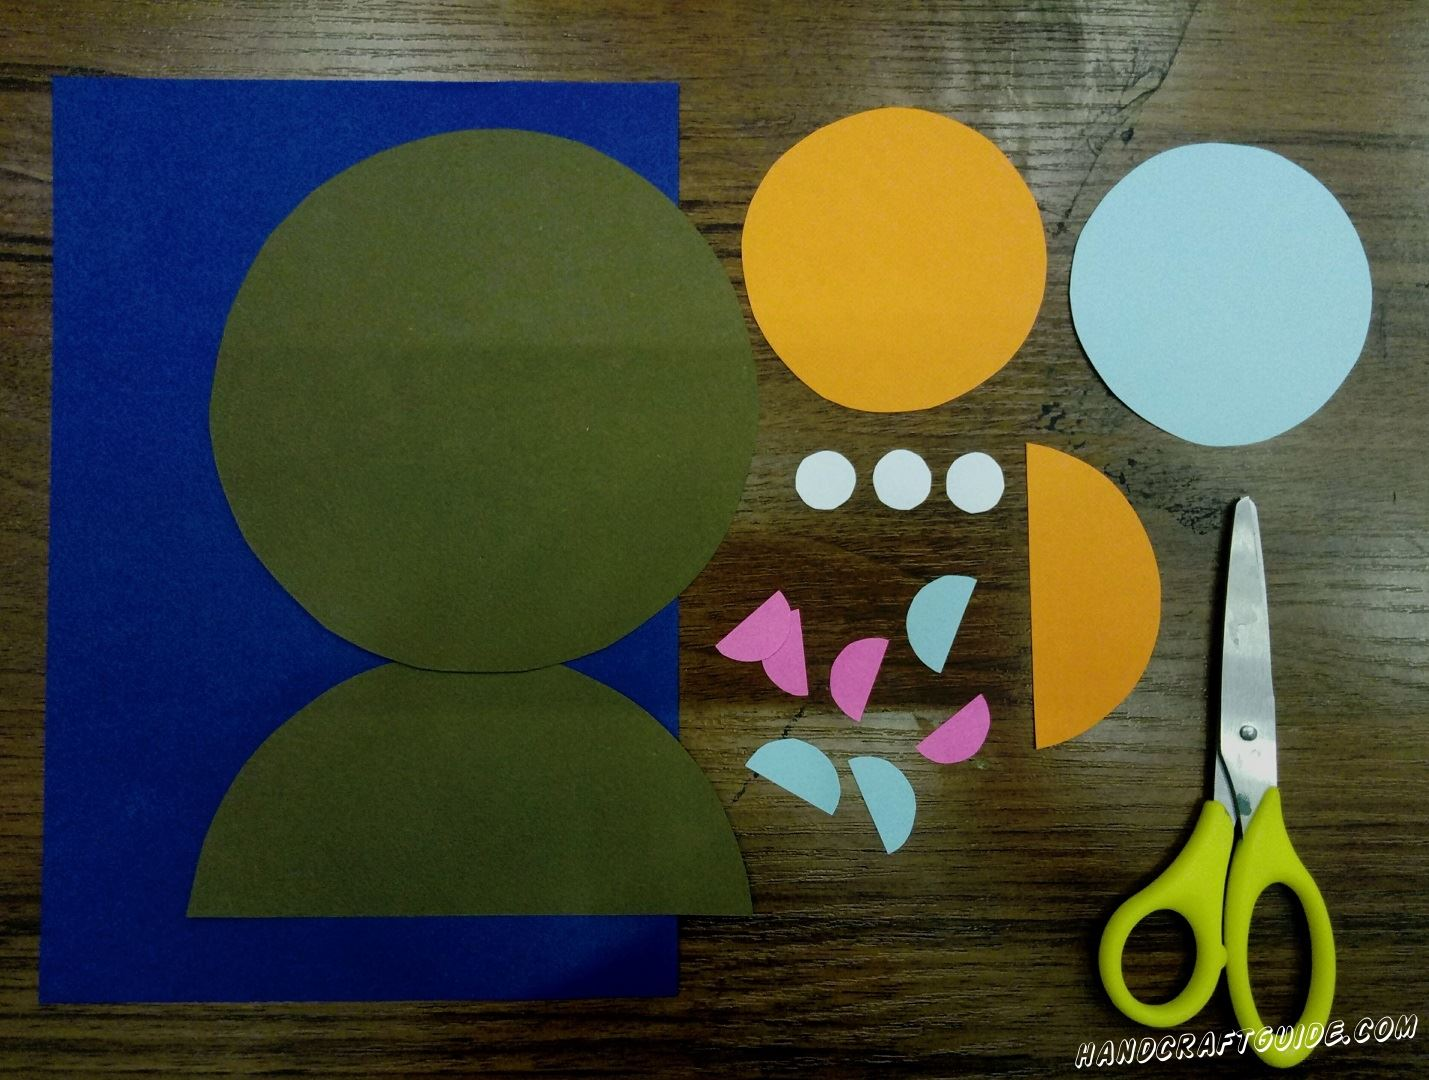 First, cut out all the needed details. Start from cuting out a large brown circle and and a semicircle of the same size. Then do the same with the orange paper, just this time cut out circle 3 times less. Cut out a blue circle, identicale to orange one, and 3 small semicircles. Out of pink paper cut 4 small semicircles of the same size as blue ones. Finish your preparation with three small white circles and take a blue sheet of paper, which serves as a background. It was not easy, but you did a great job! L